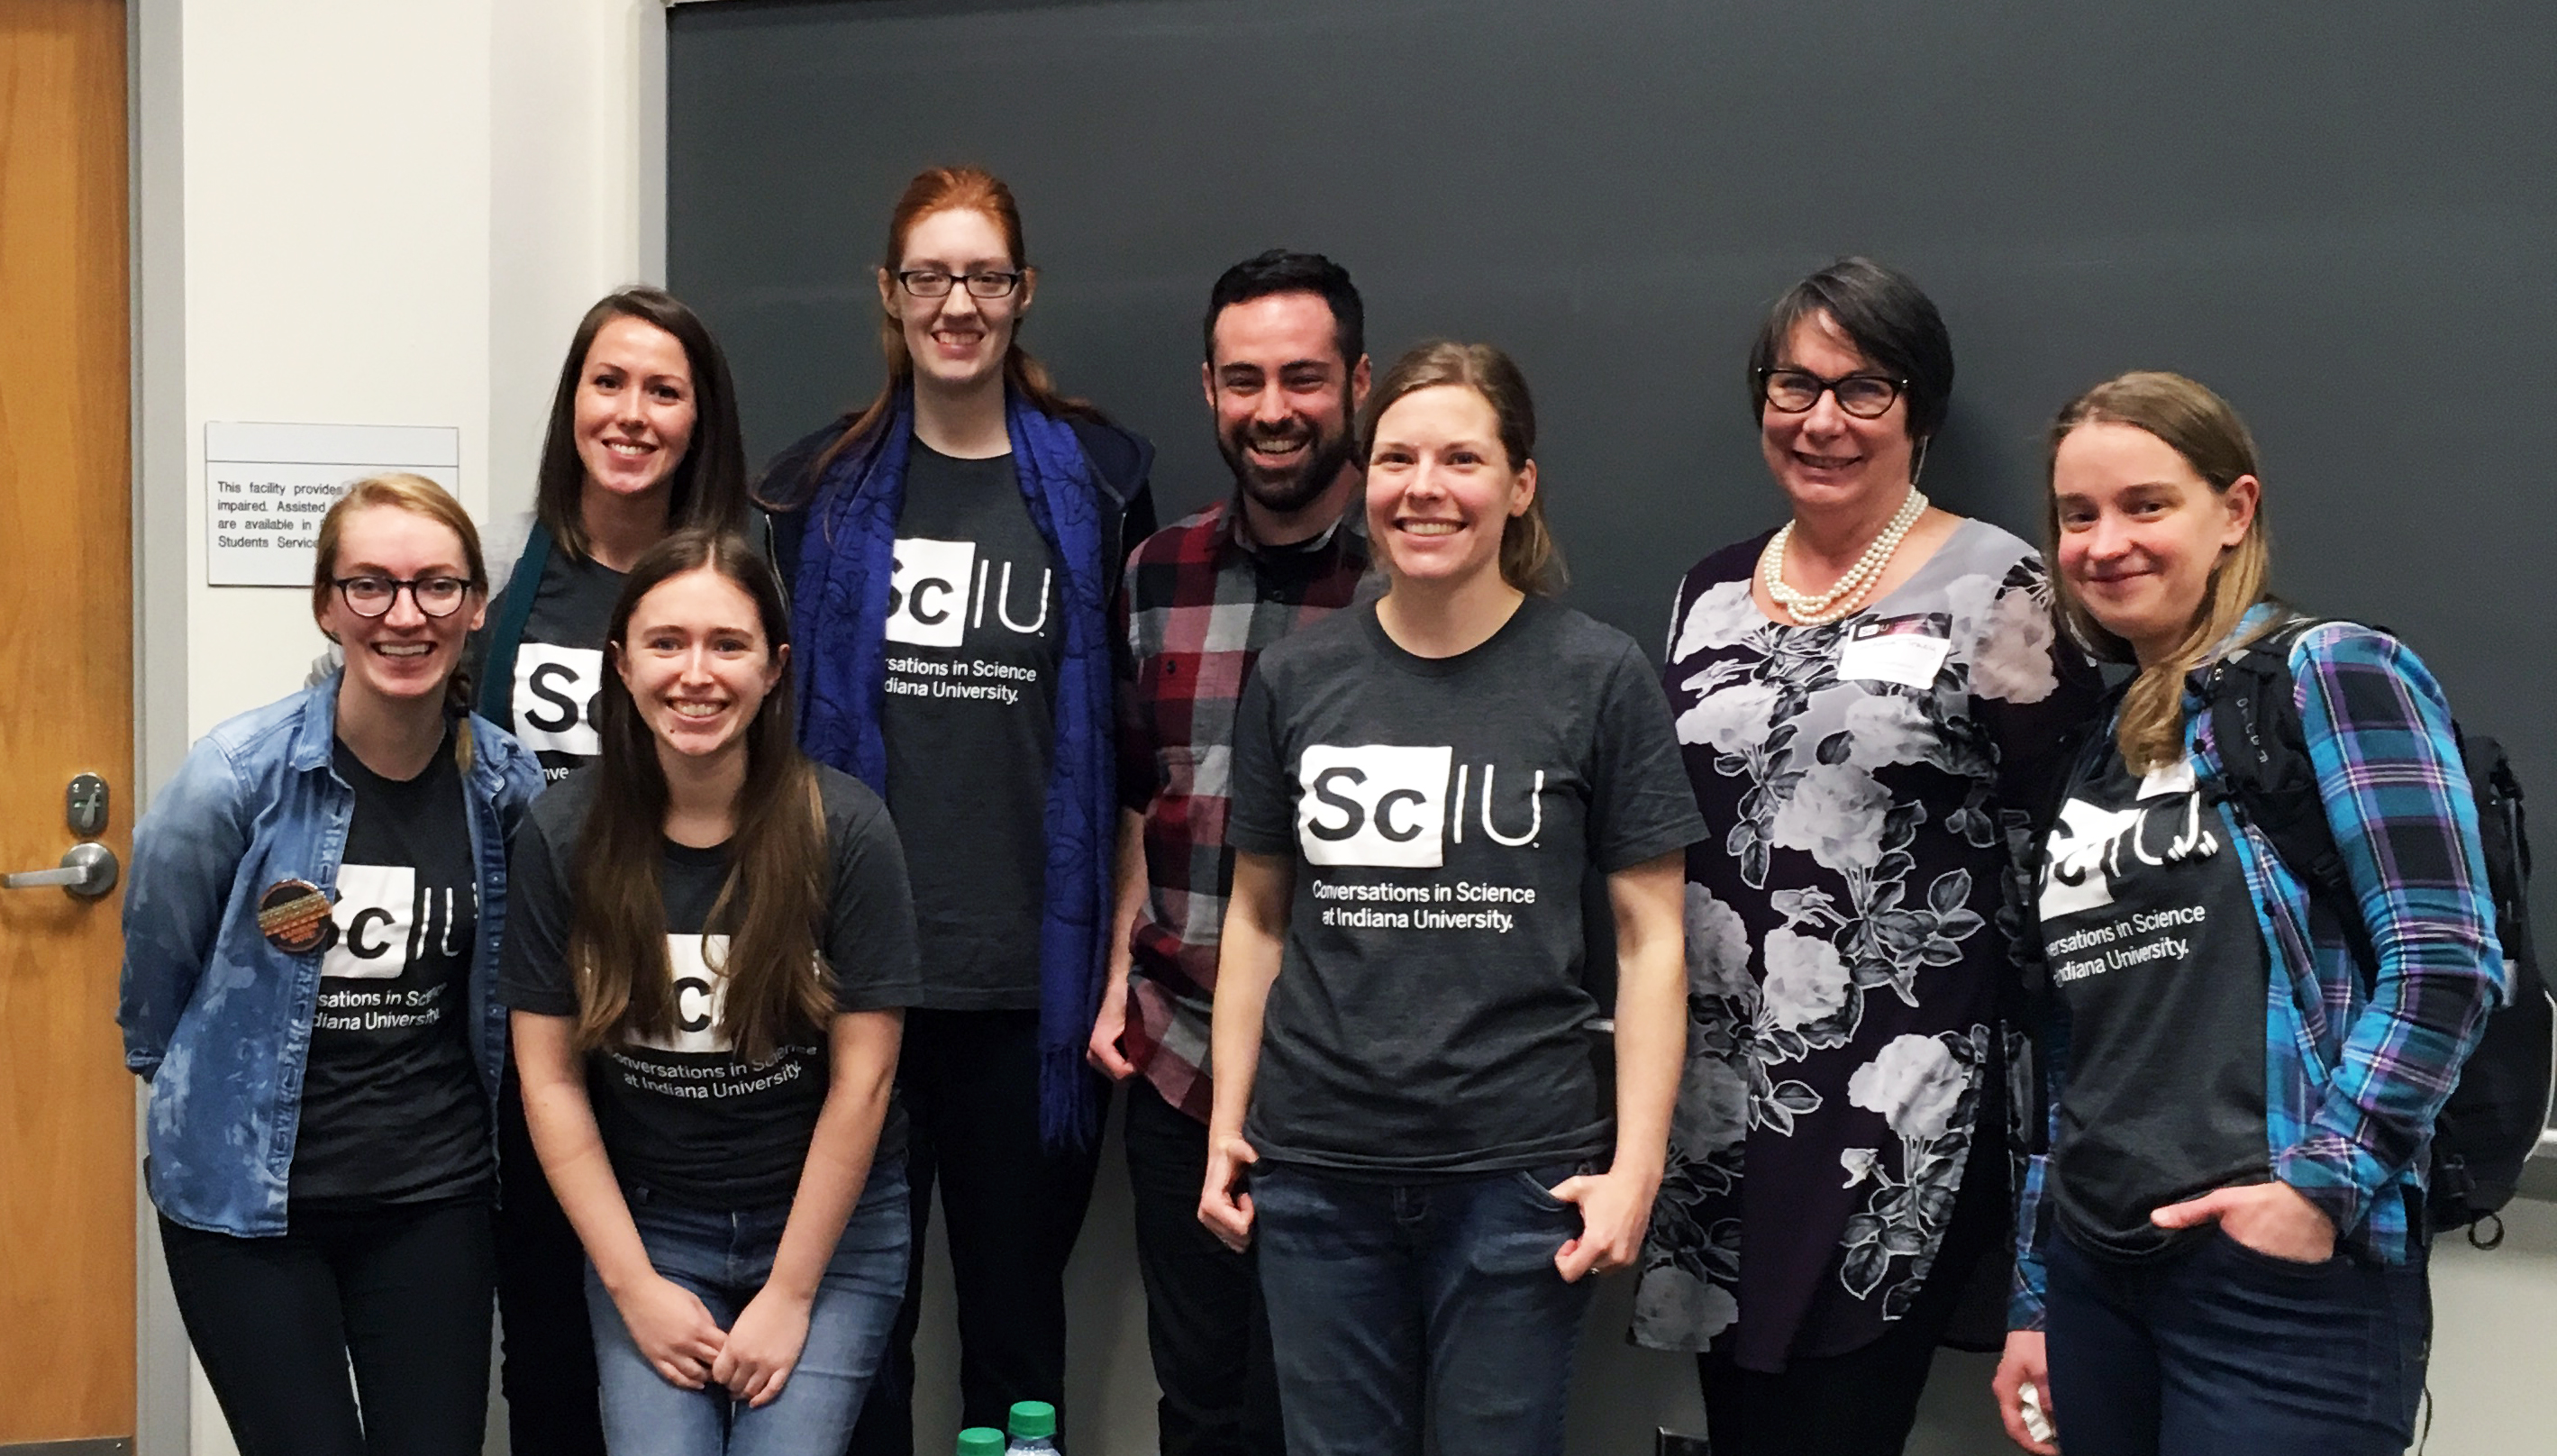 The group of ScIU bloggers and guest speaker standing in front of a chalkboard